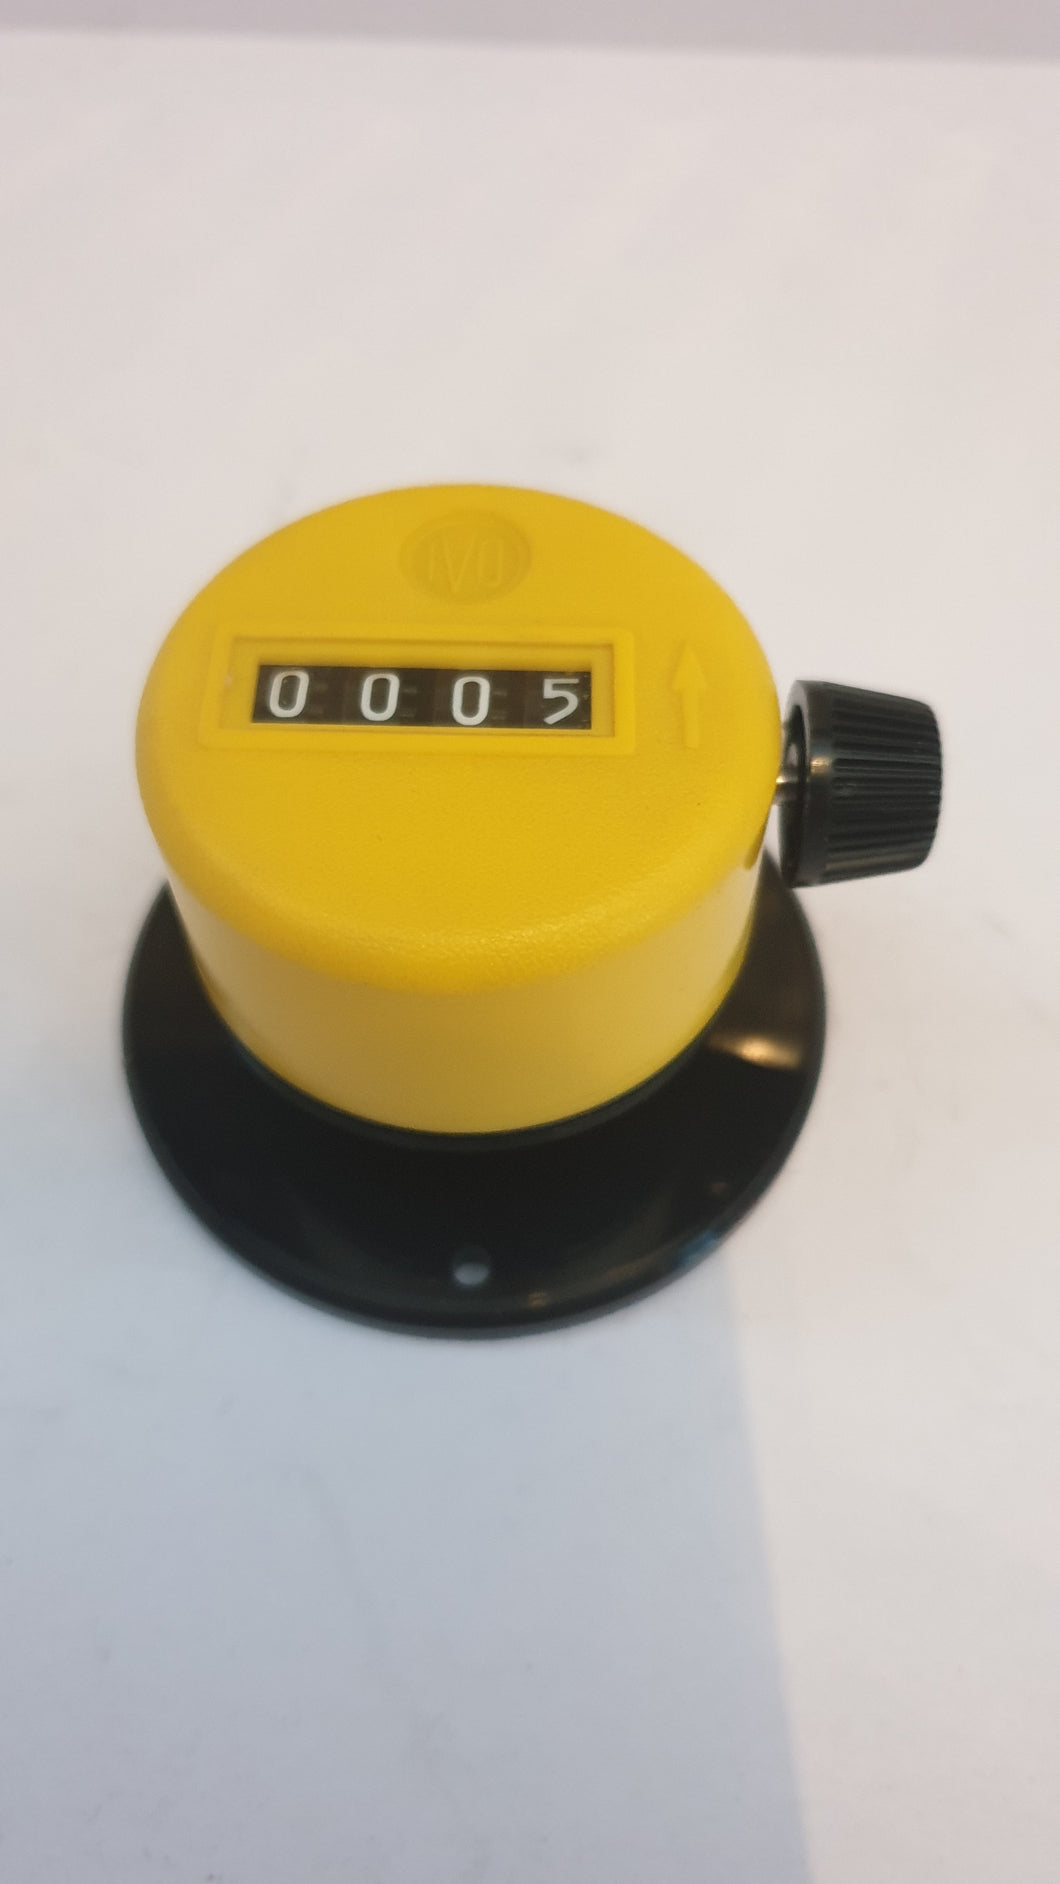 T 134.010A Hand-held piece counters, plastic housing display 4-digits, reset button